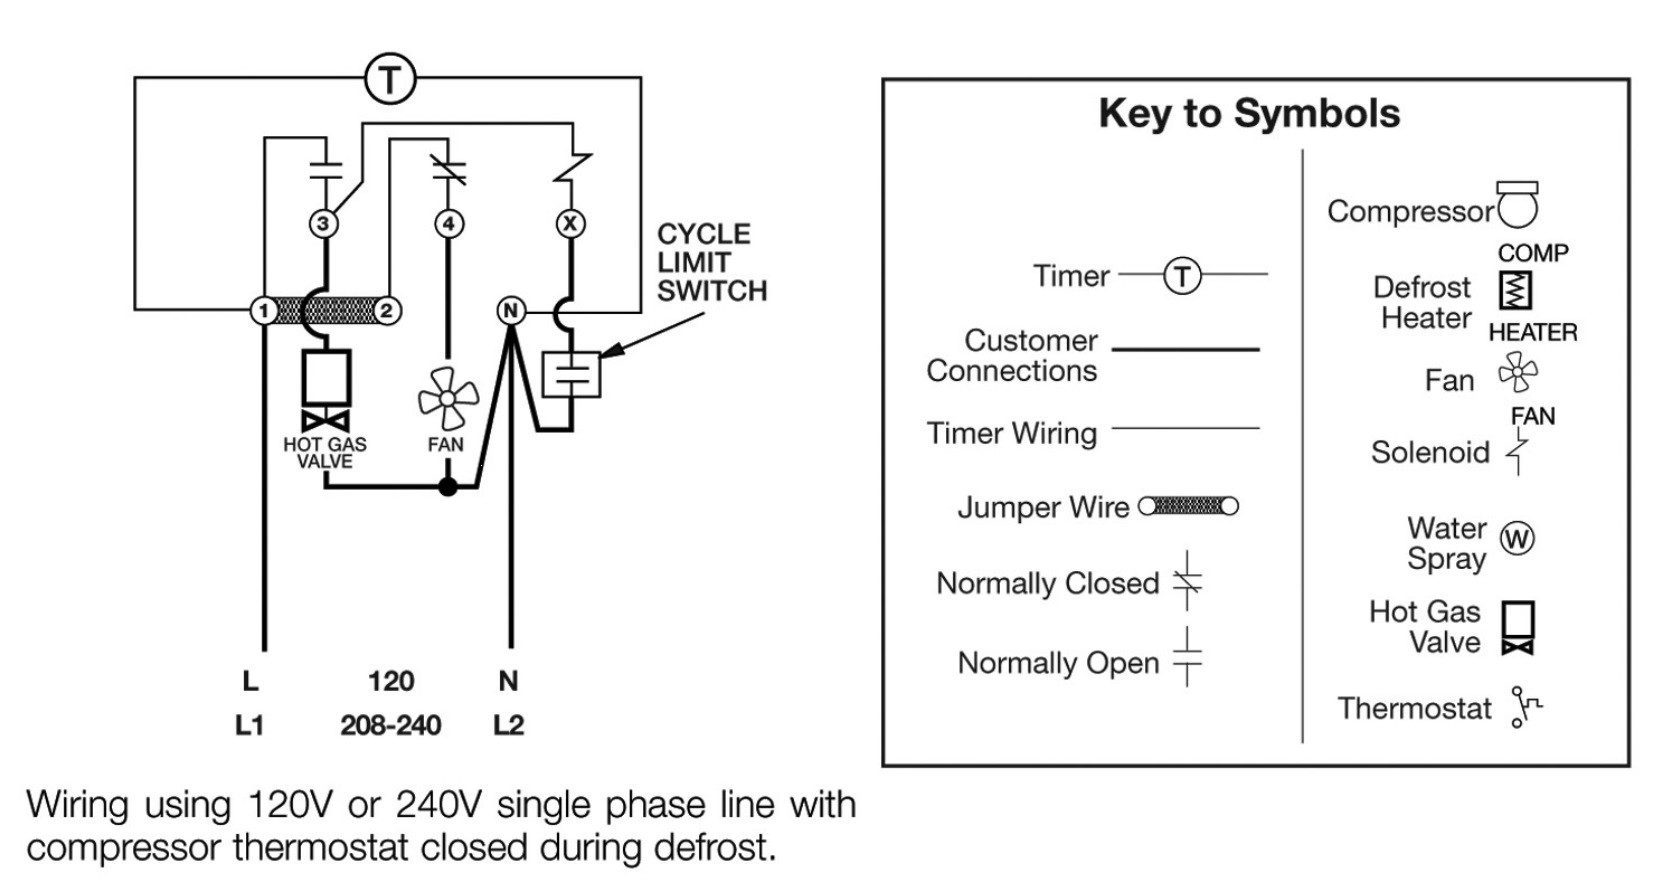 8045 00 defrost timer wiring diagram wiring diagram services u2022 rh openairpublishing com